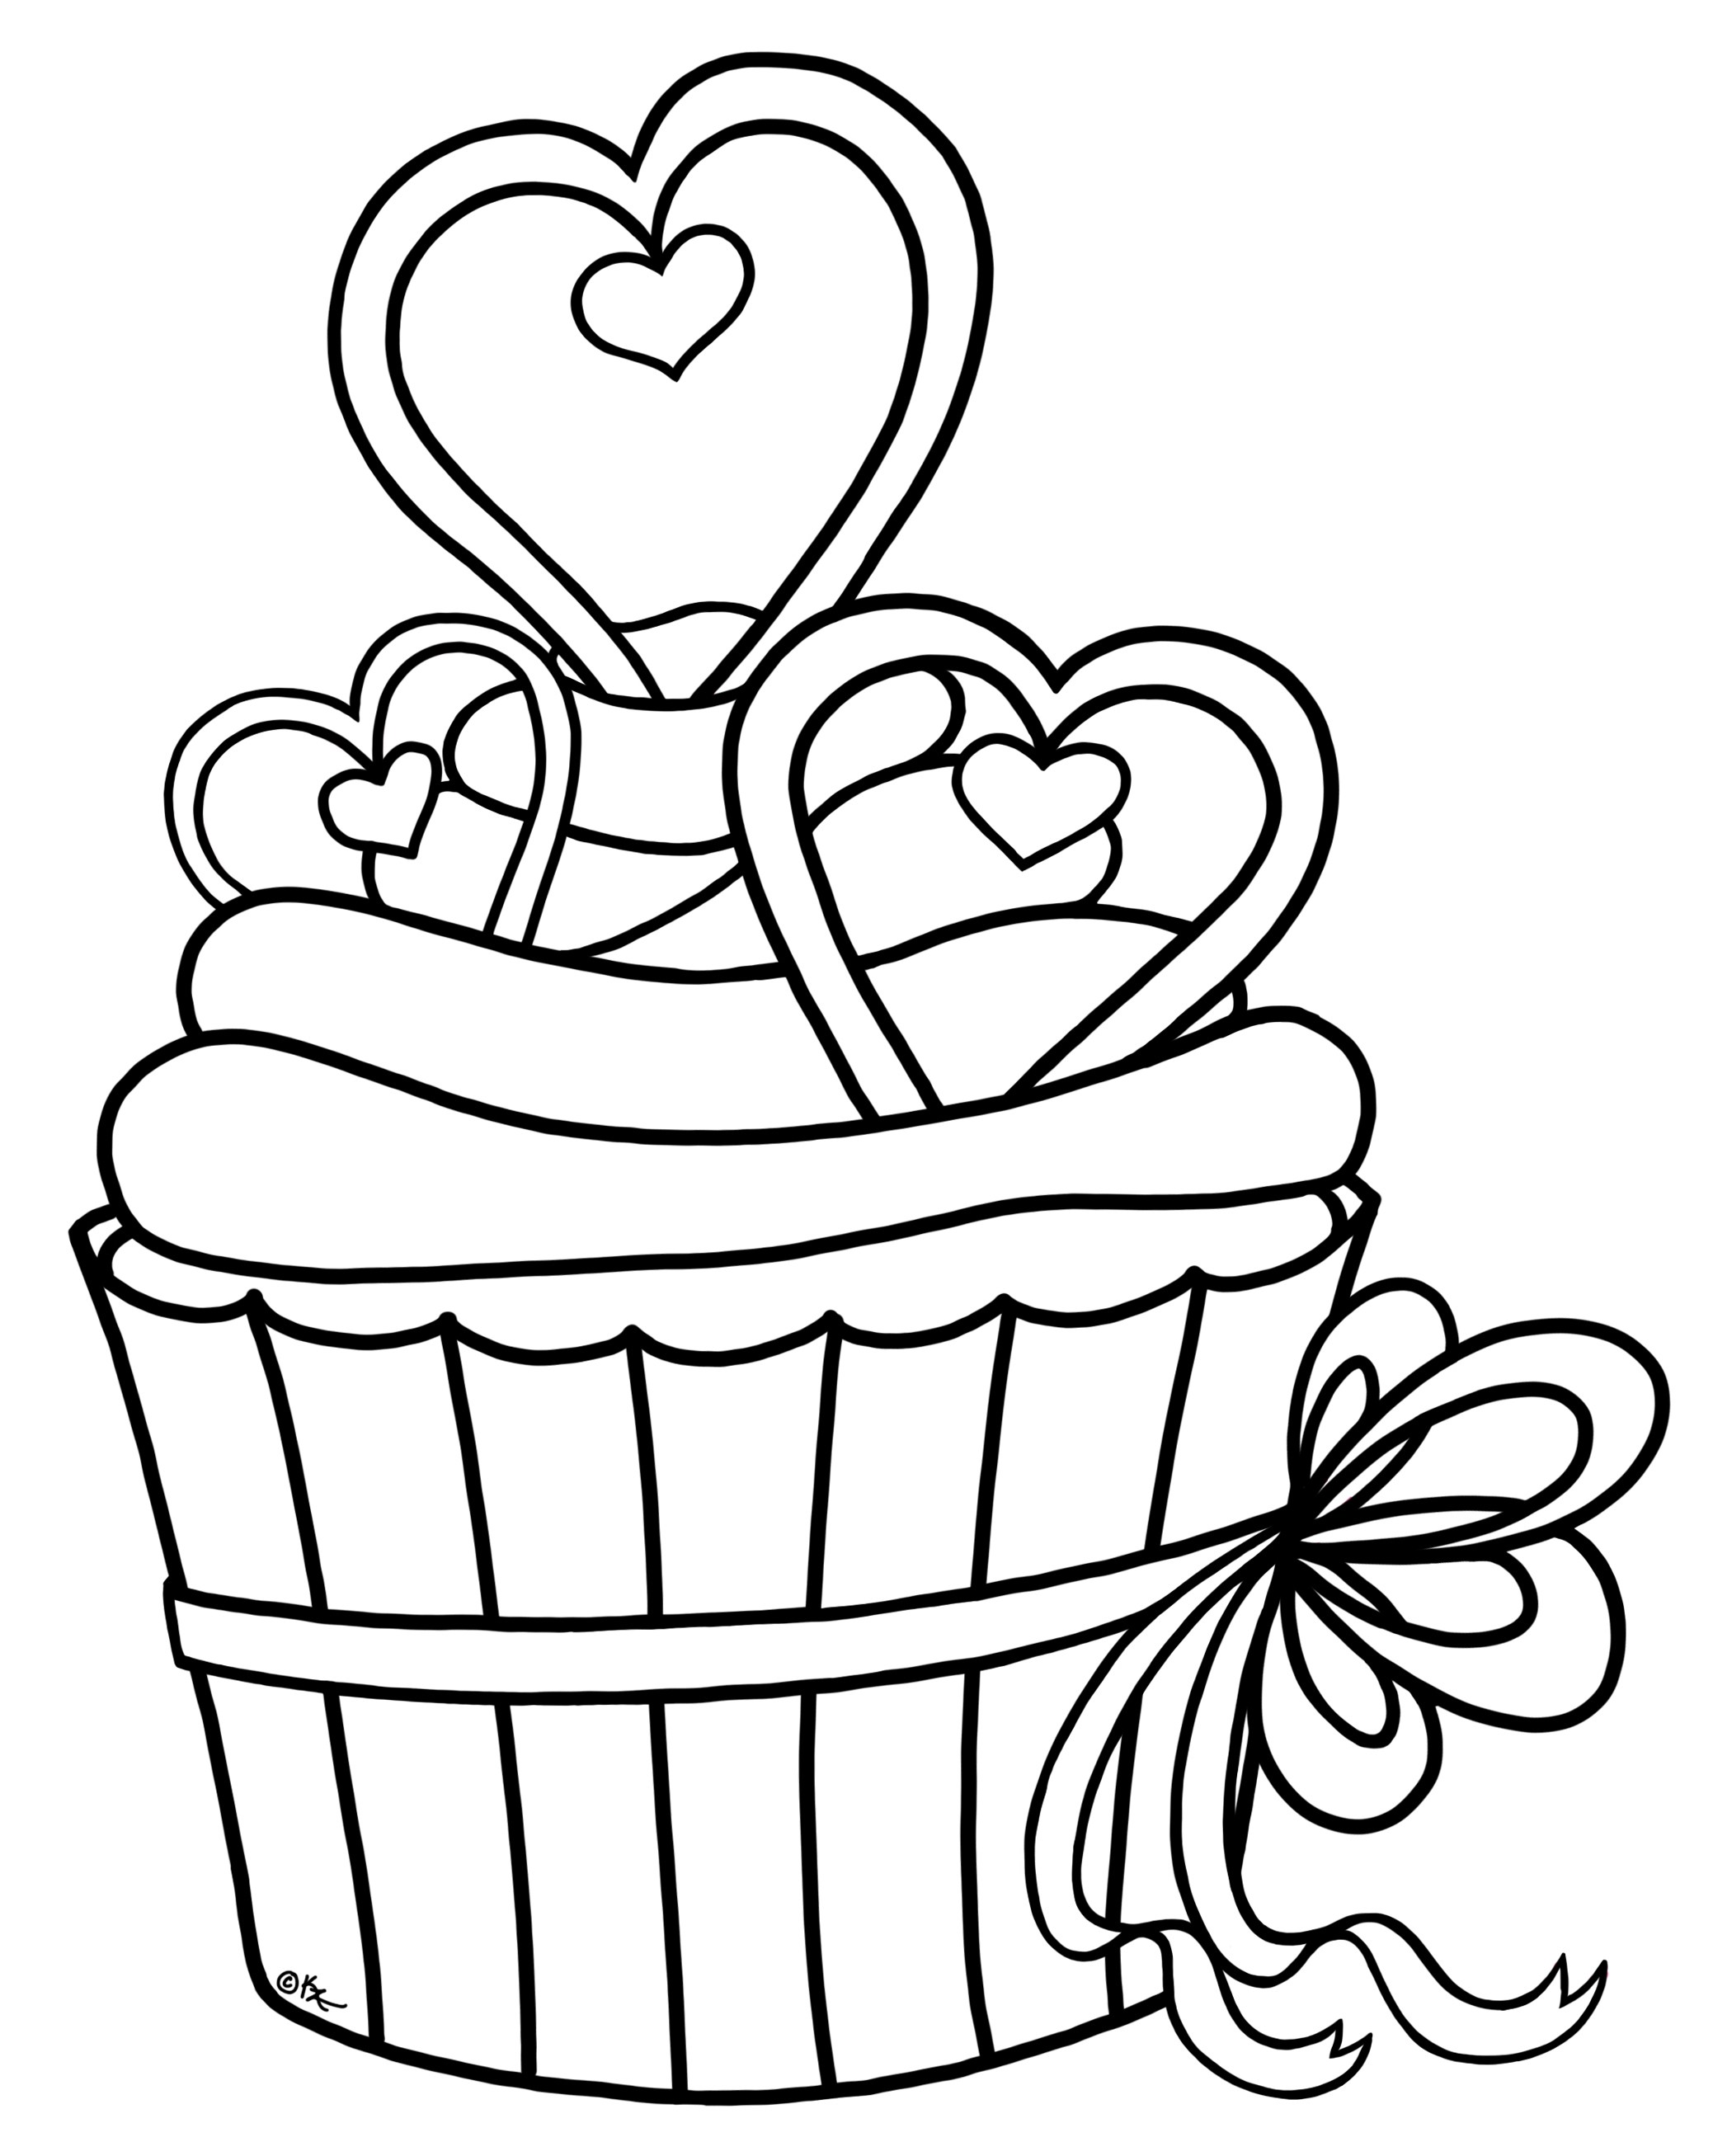 2077x2614 Birthday Cake Outline Images